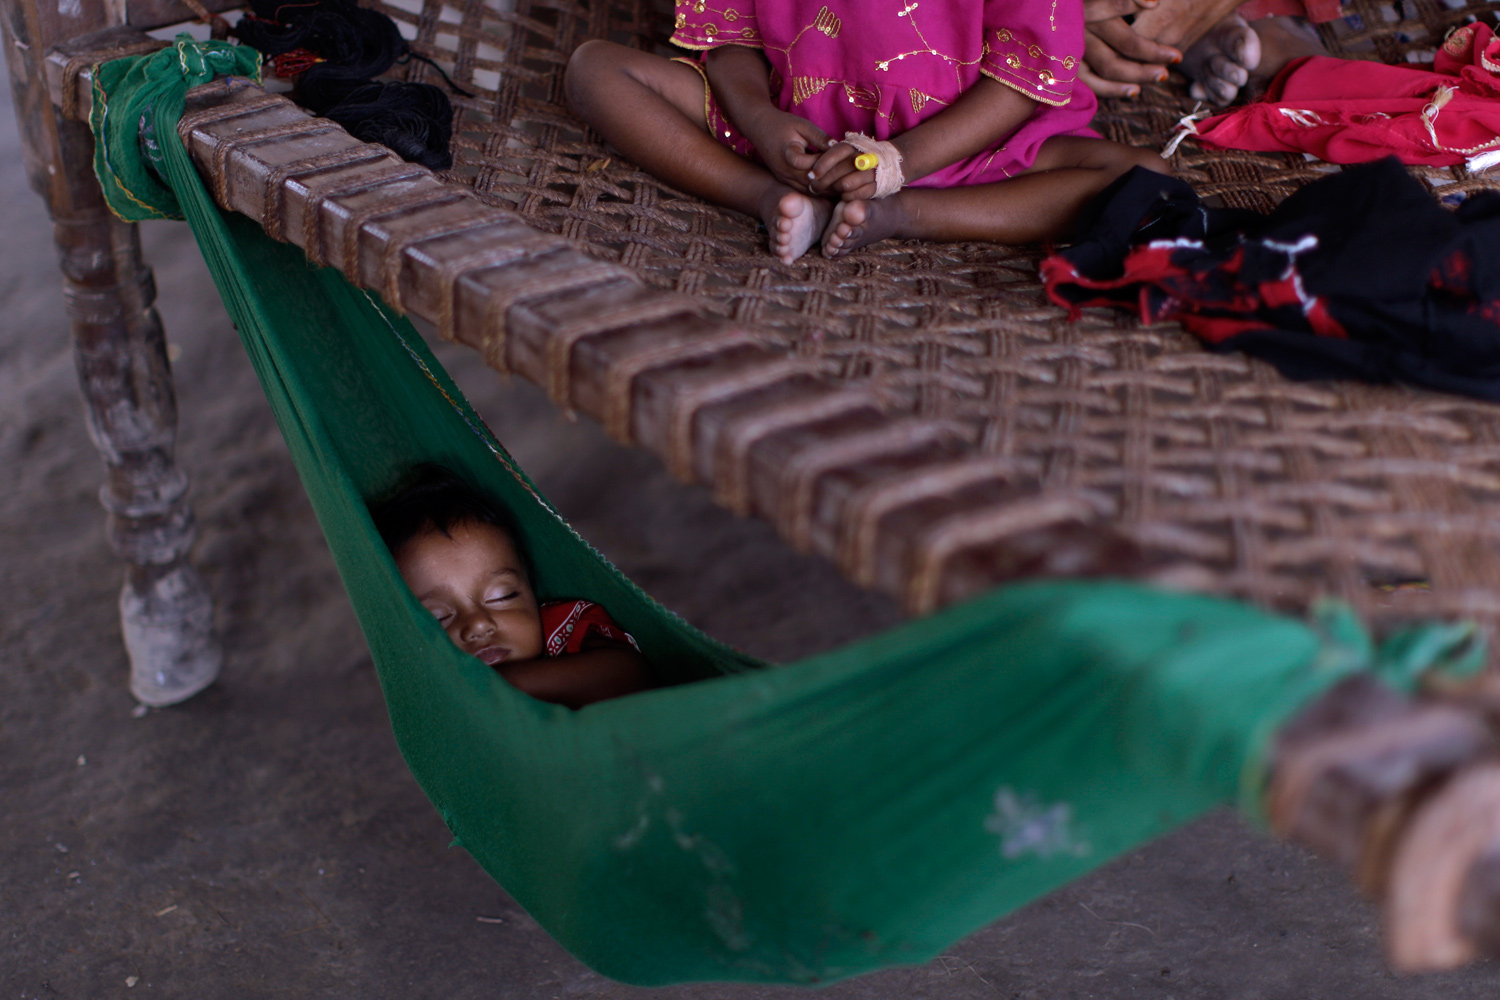 September 18, 2011. A Pakistani child displaced by floods sleep in a hammock at a shanty, in Badin district near Hyderabad, Pakistan.